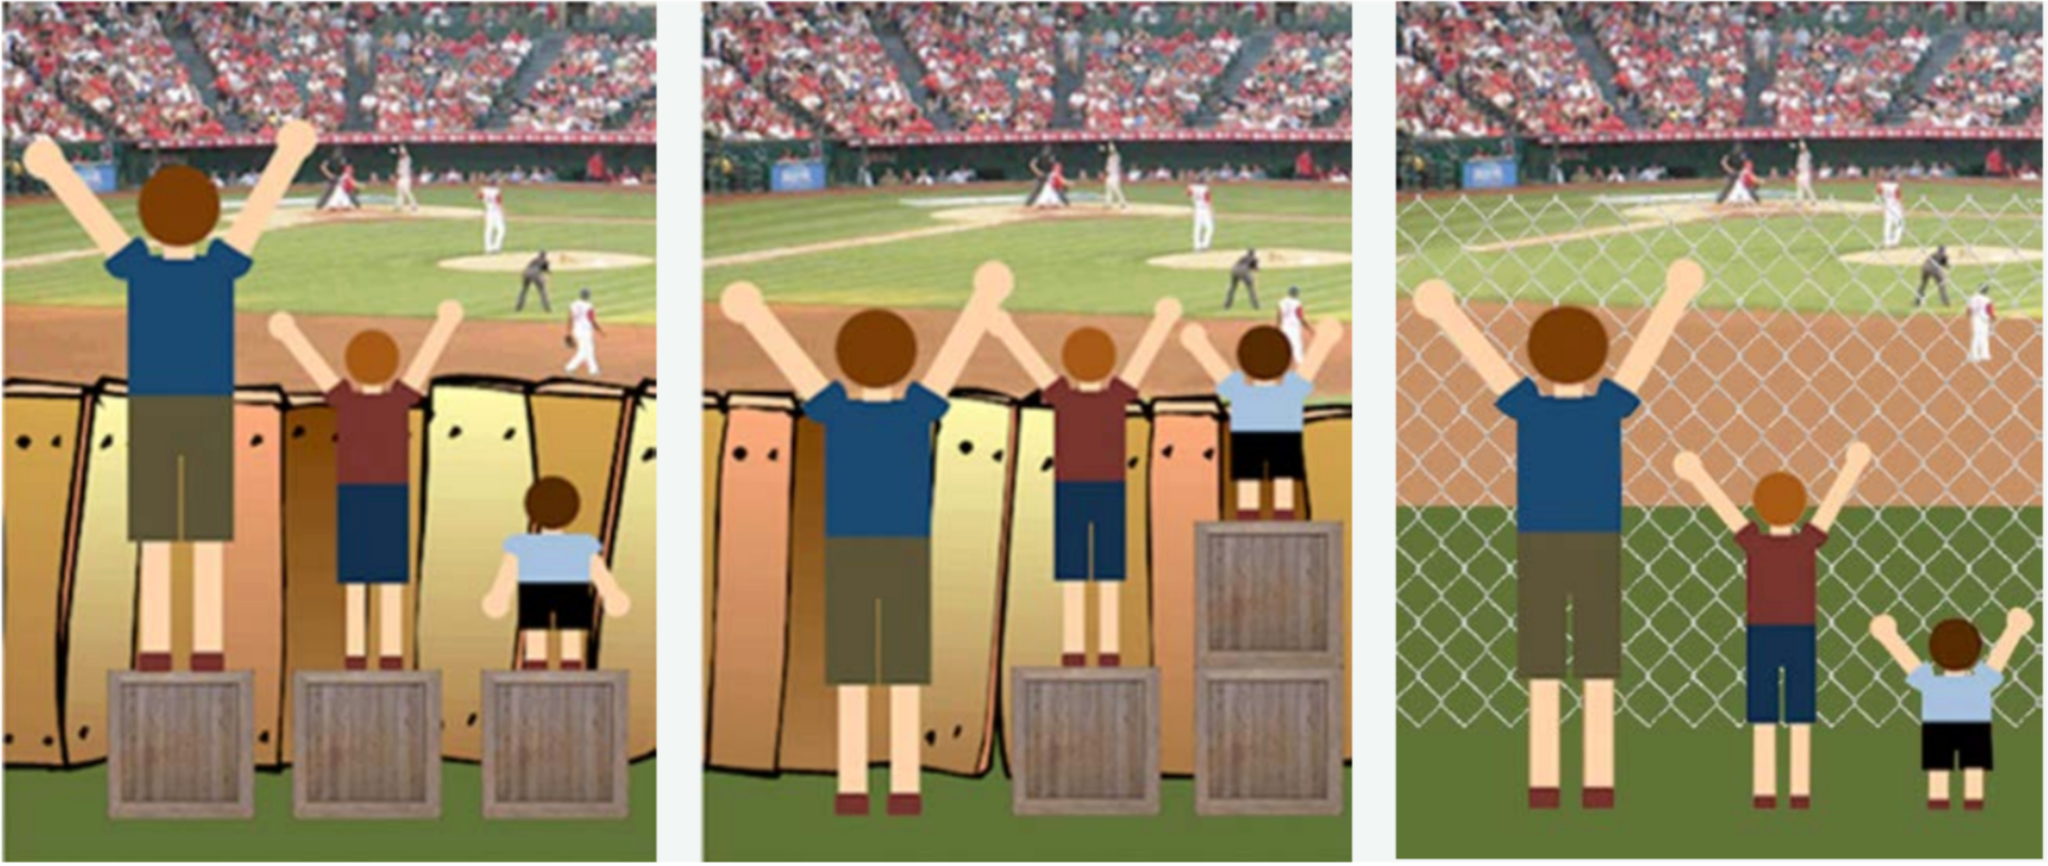 Three images showing people watching a baseball game. The first image shows a non see through fence, second image with the same fence but people have additional boxes to stand on and the last image shows a see through fence.